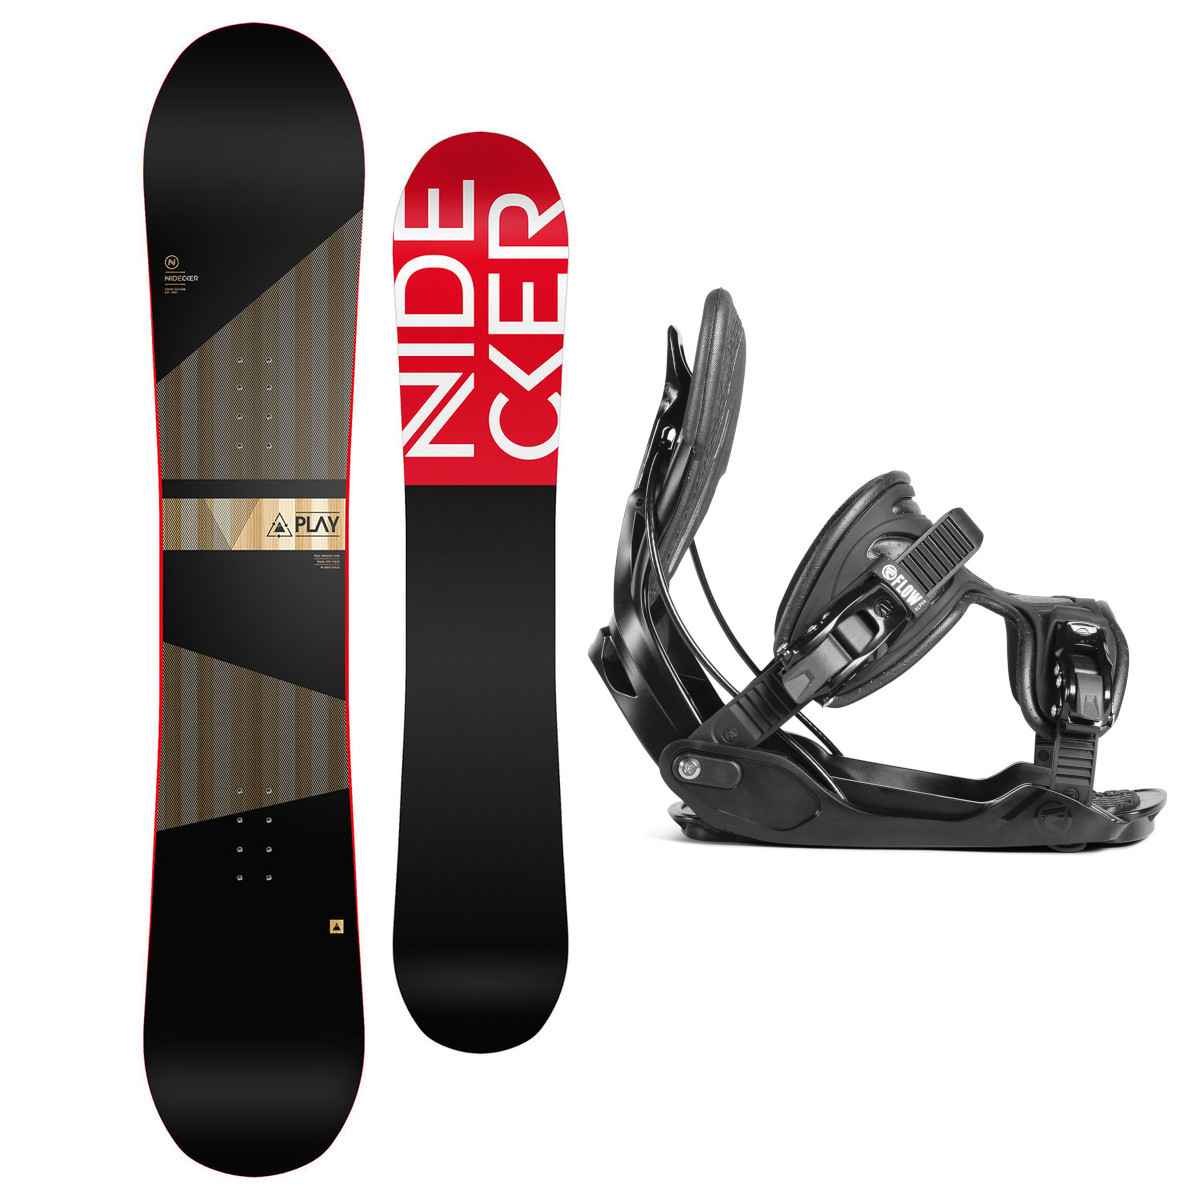 Snowboardový set Nidecker Play 17/18 XL (EU 44-49,5) 162XL